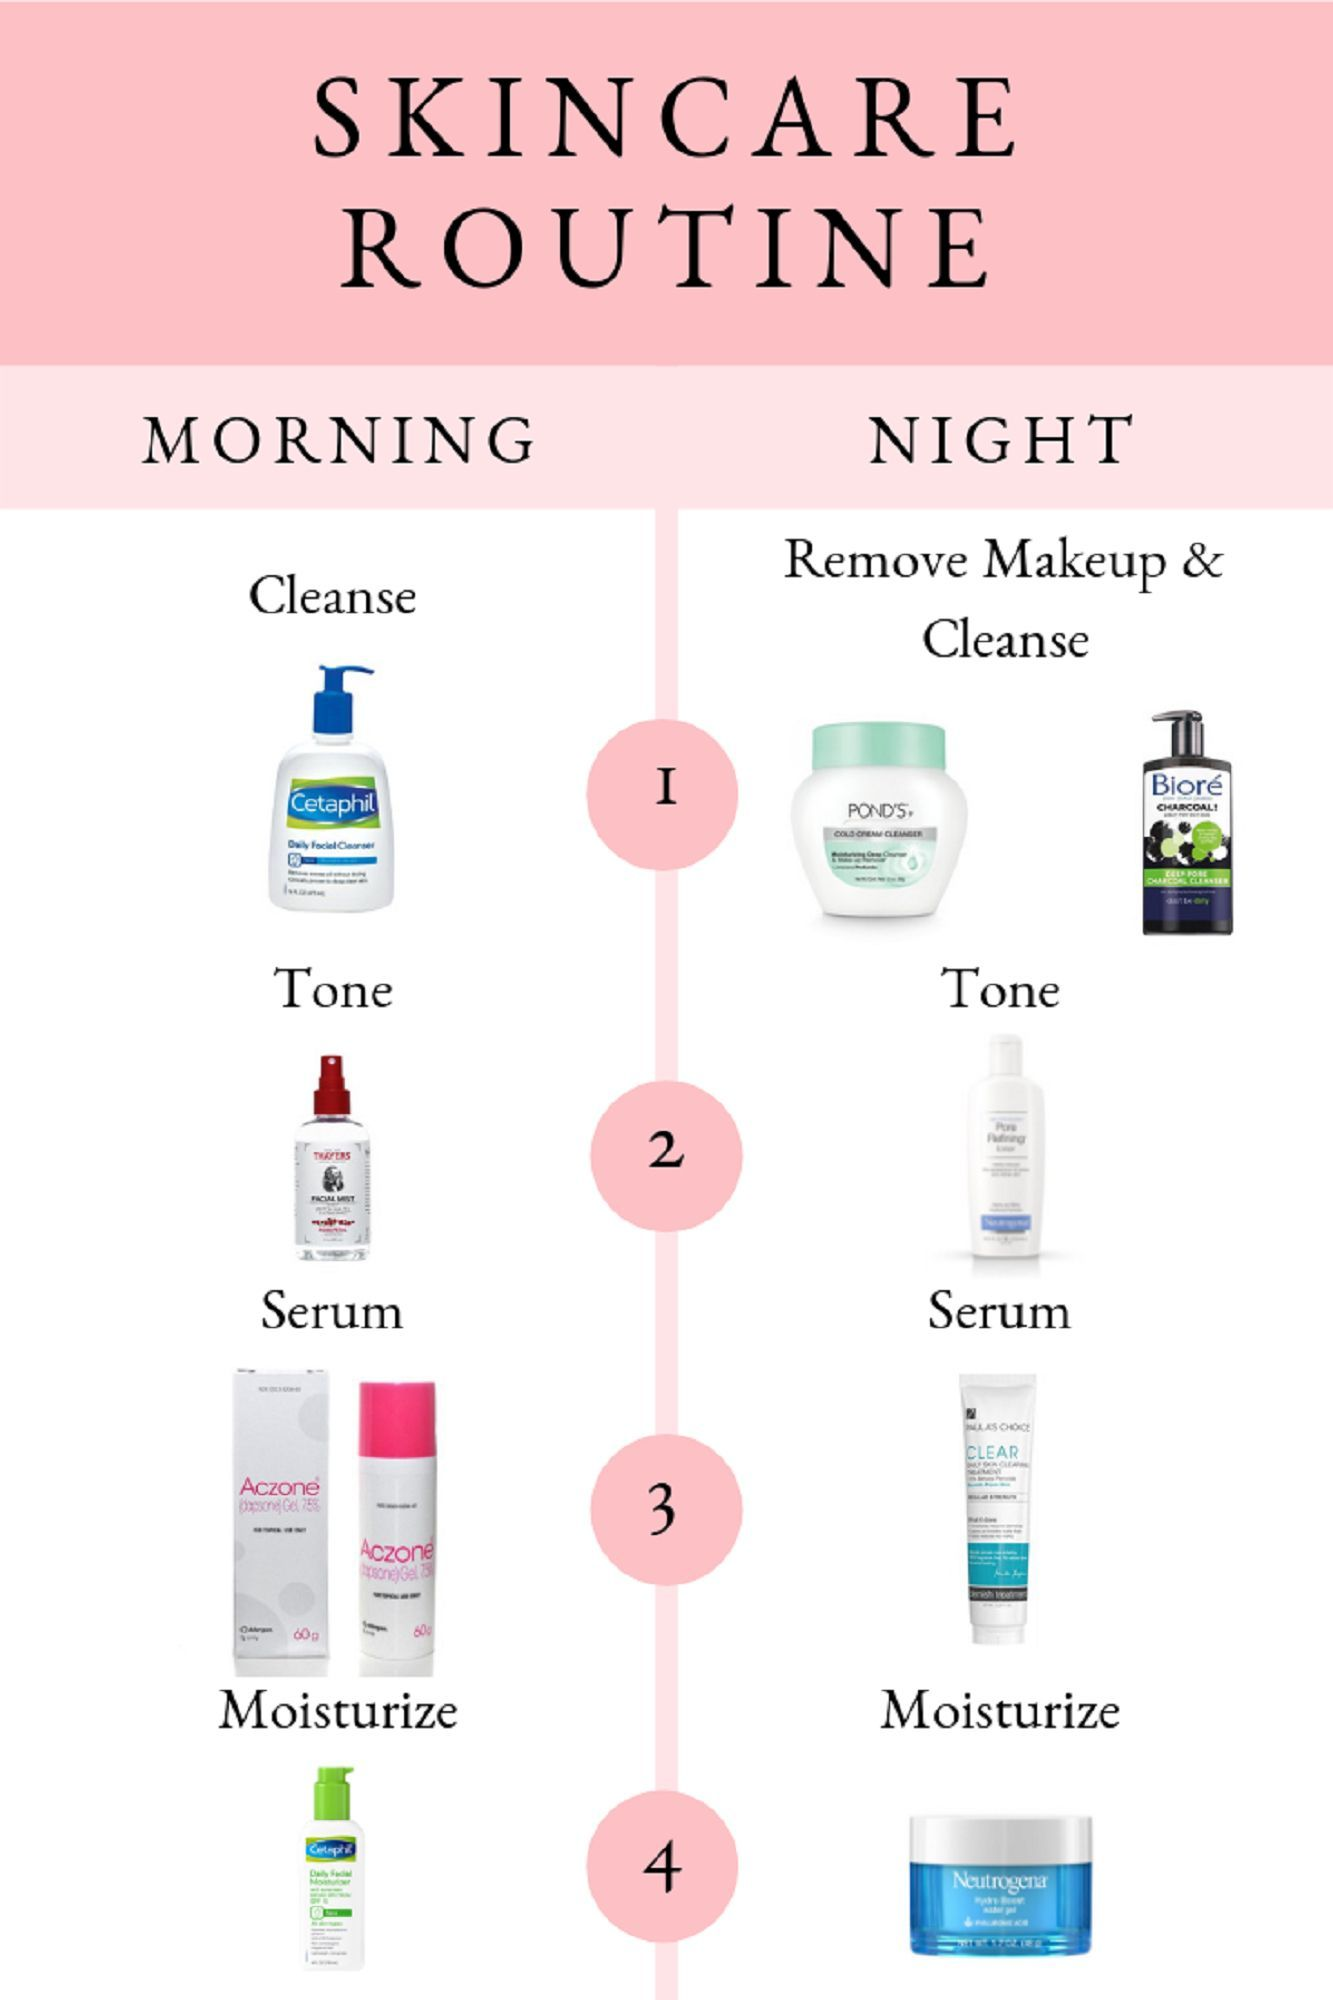 Am Amp Pm Skincare Routine For Clear Glowy Skin Skincare Skincareroutine Howtoclearskin Cle In 2020 Skin Care Guide Skin Care Routine Steps Skin Care Solutions